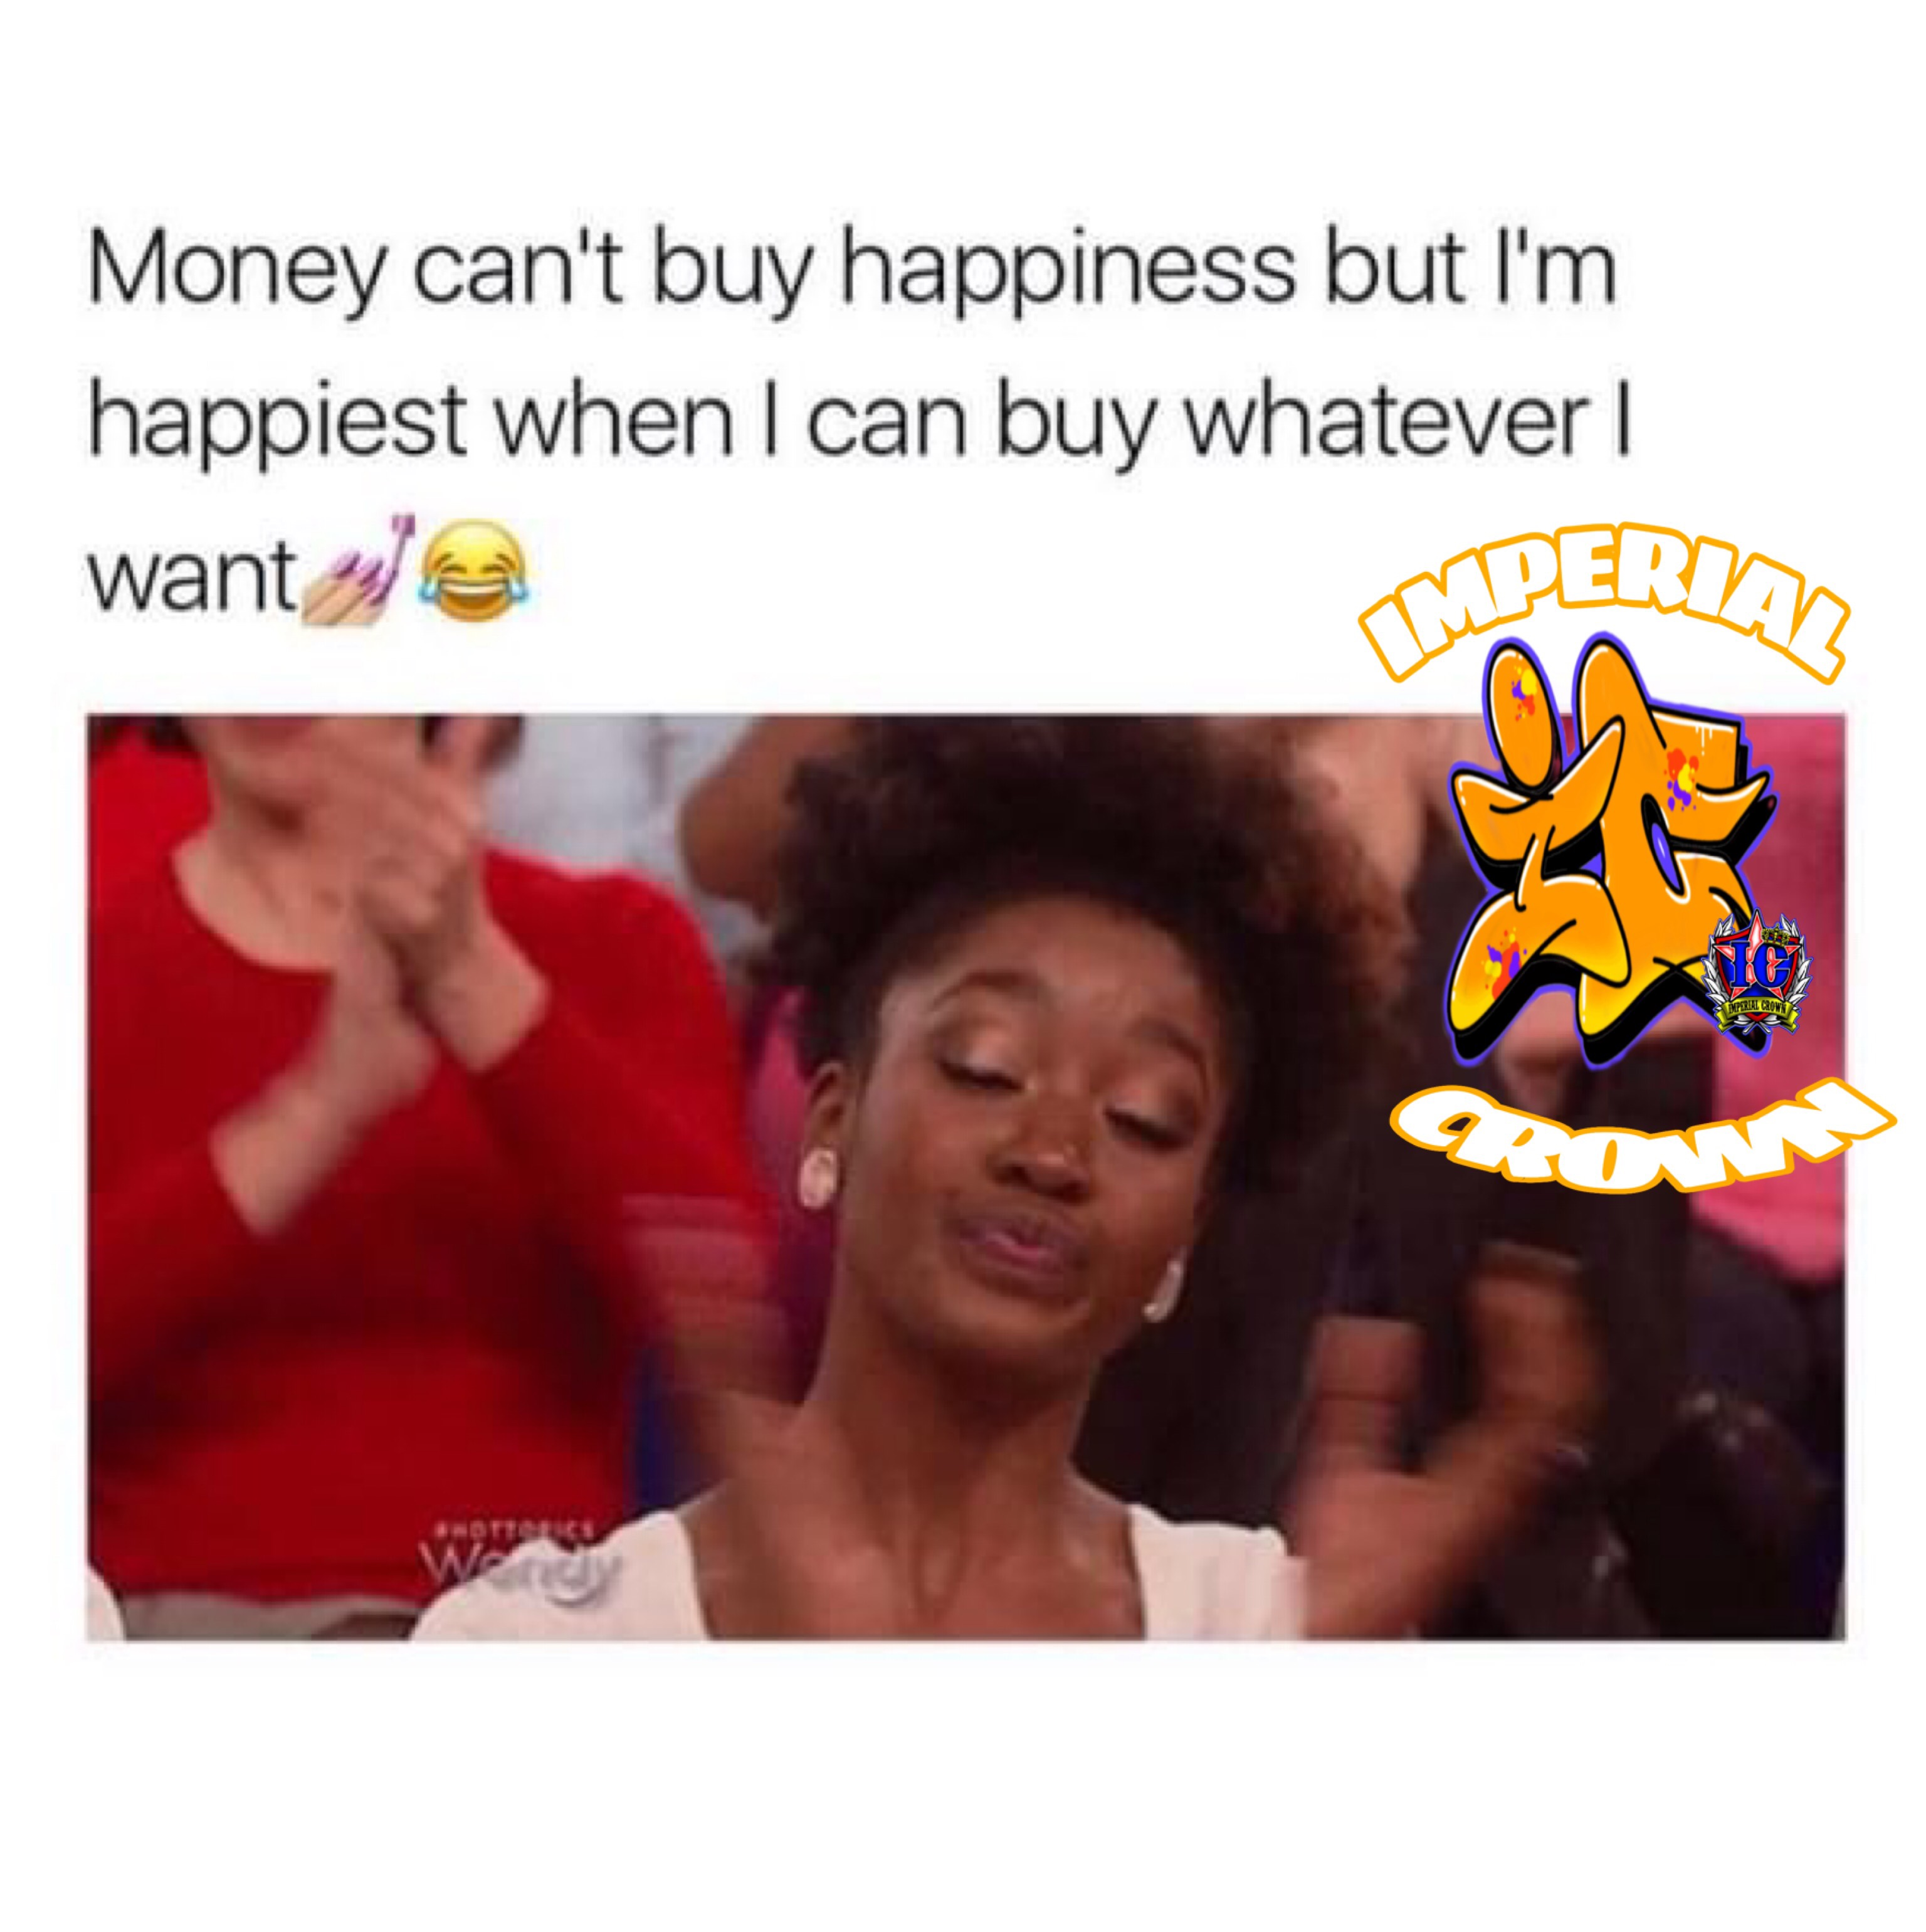 Money cant buy happiness but im happiest when I can buy whatever I want